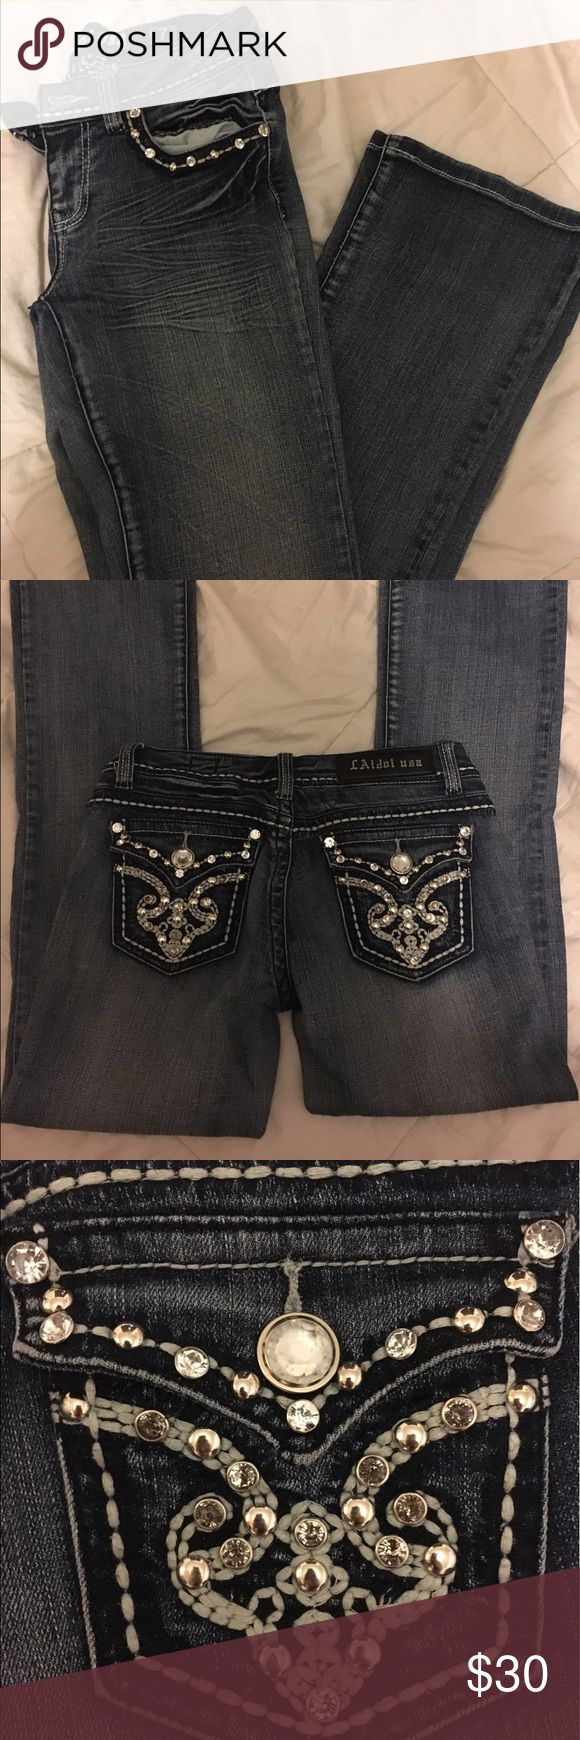 LA Idol Jeans Sz 30 (fits more like 27-28) Love the jeans, just don't wear them much anymore. Tag says 30 but for more like a 27-28. LA Idol Jeans Boot Cut